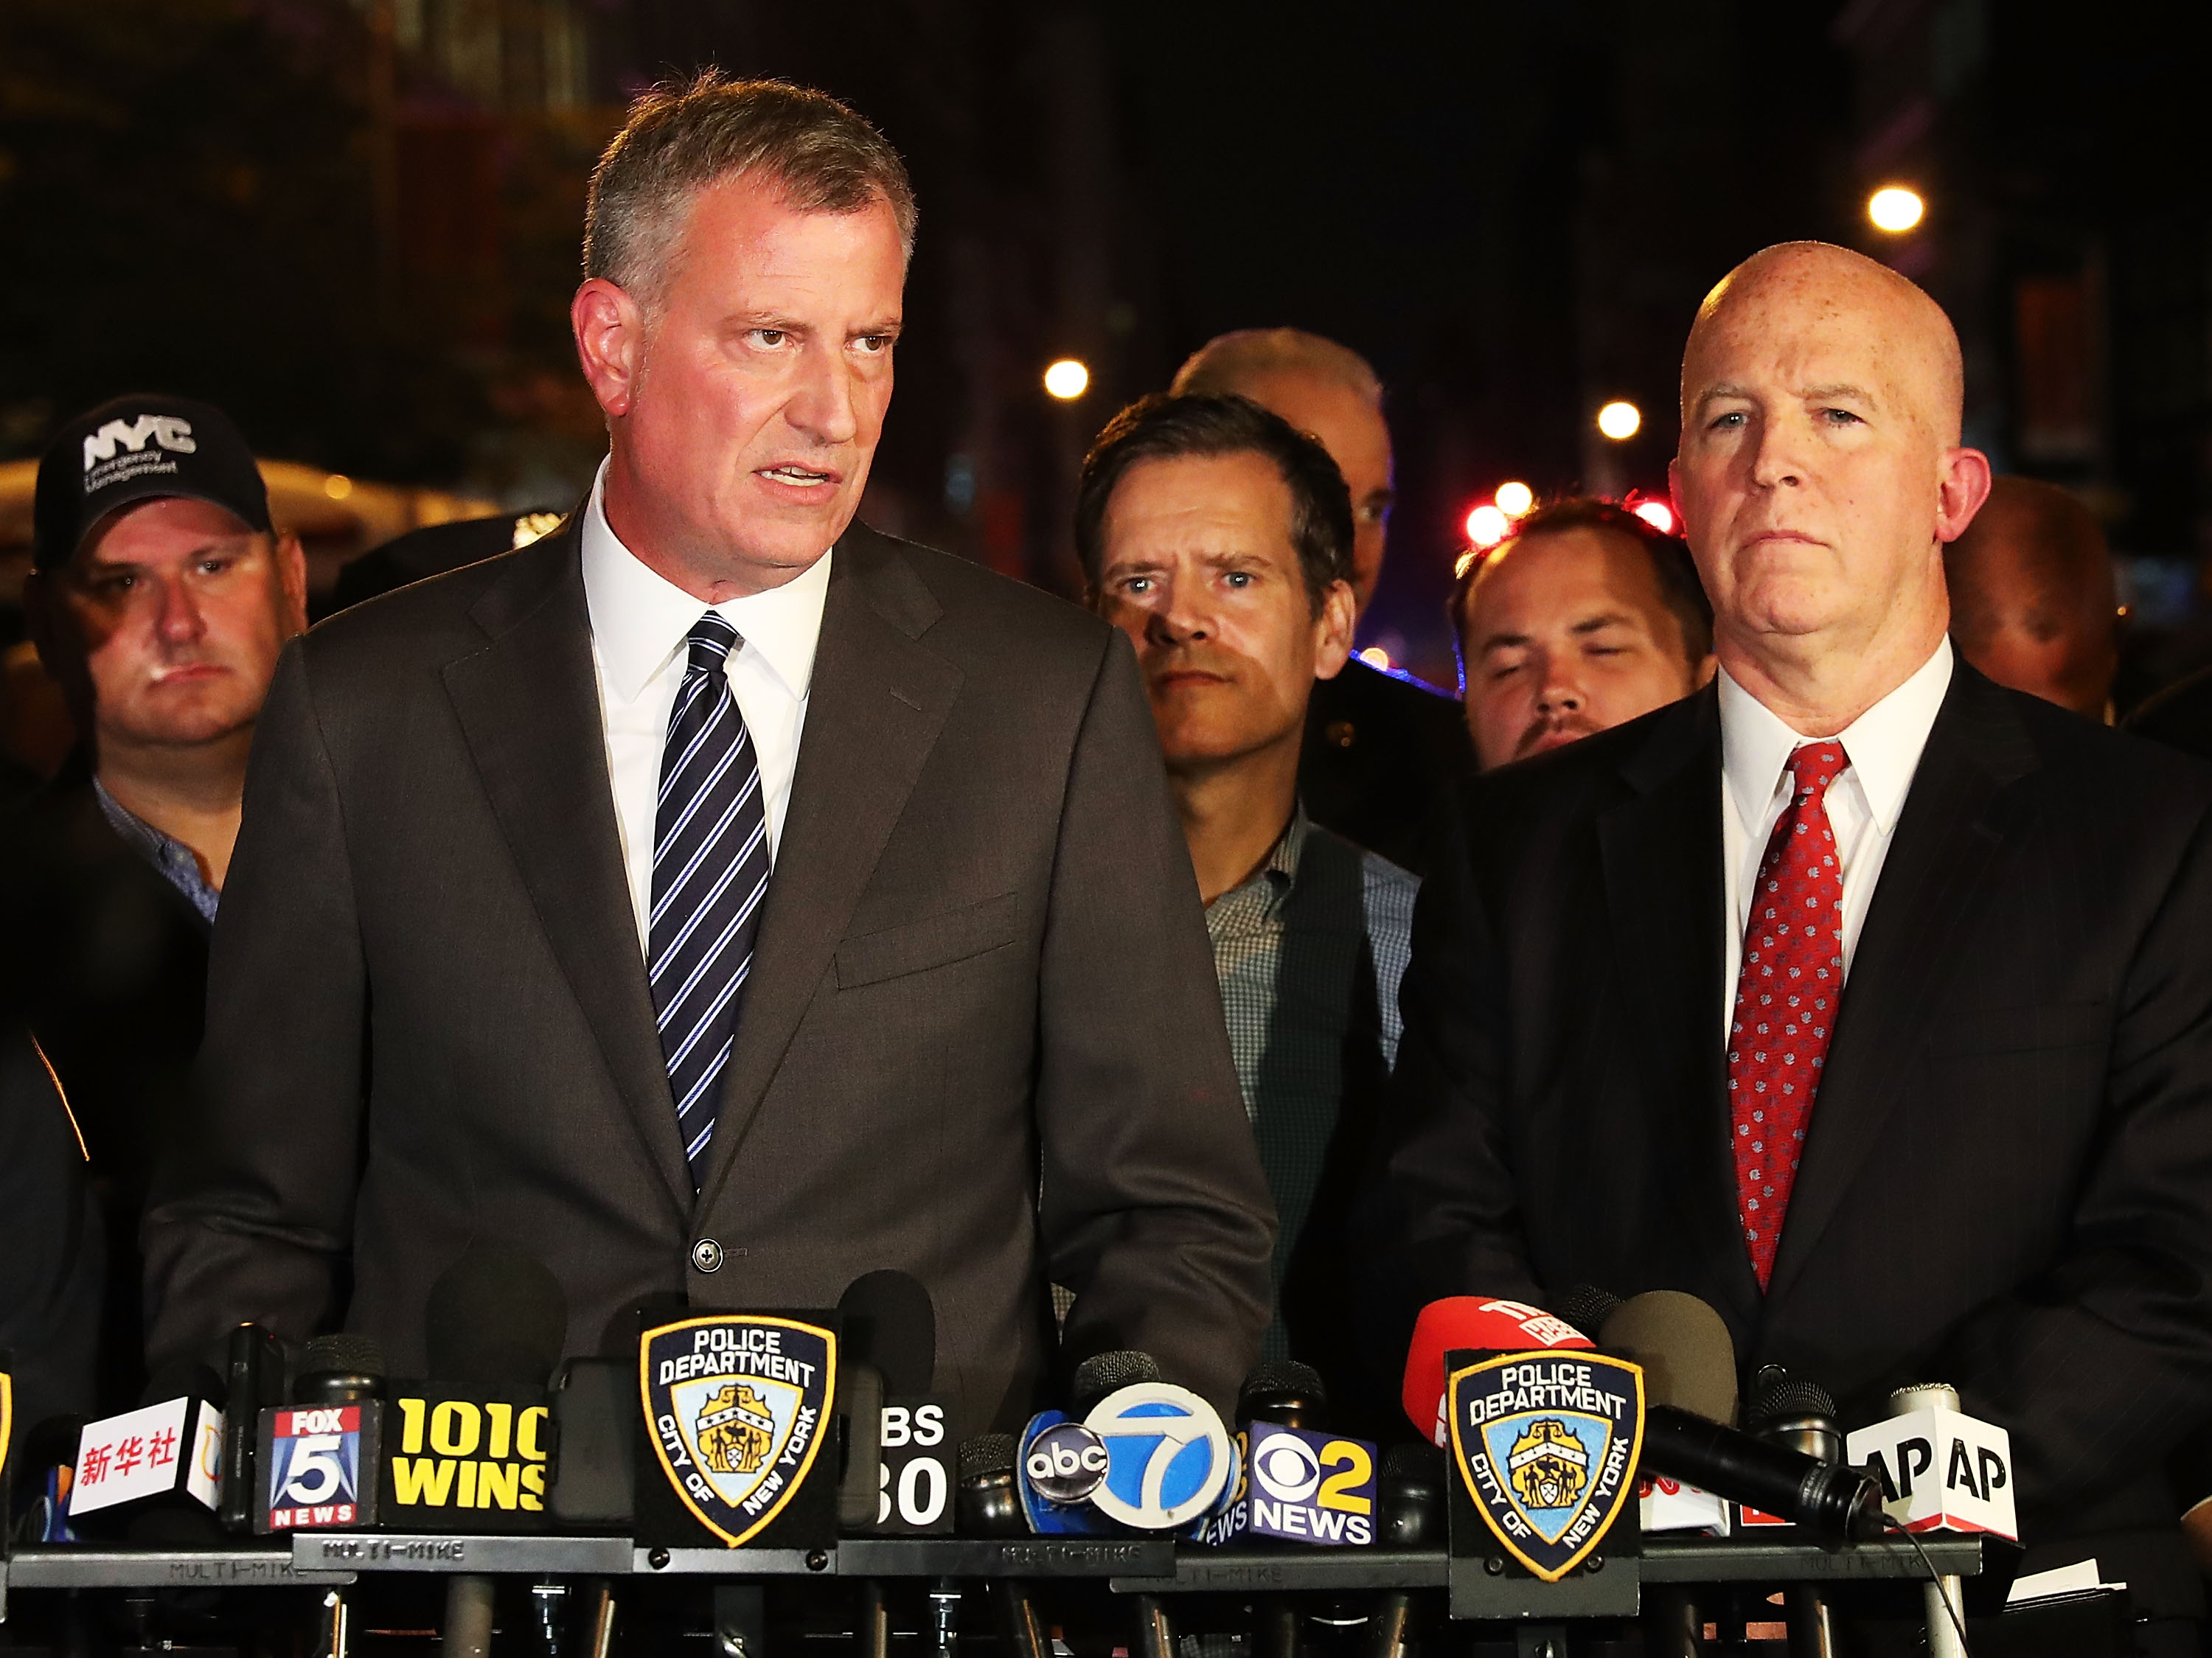 Mayor Bill de Blasio and Police Commissioner James O'Neill last night.